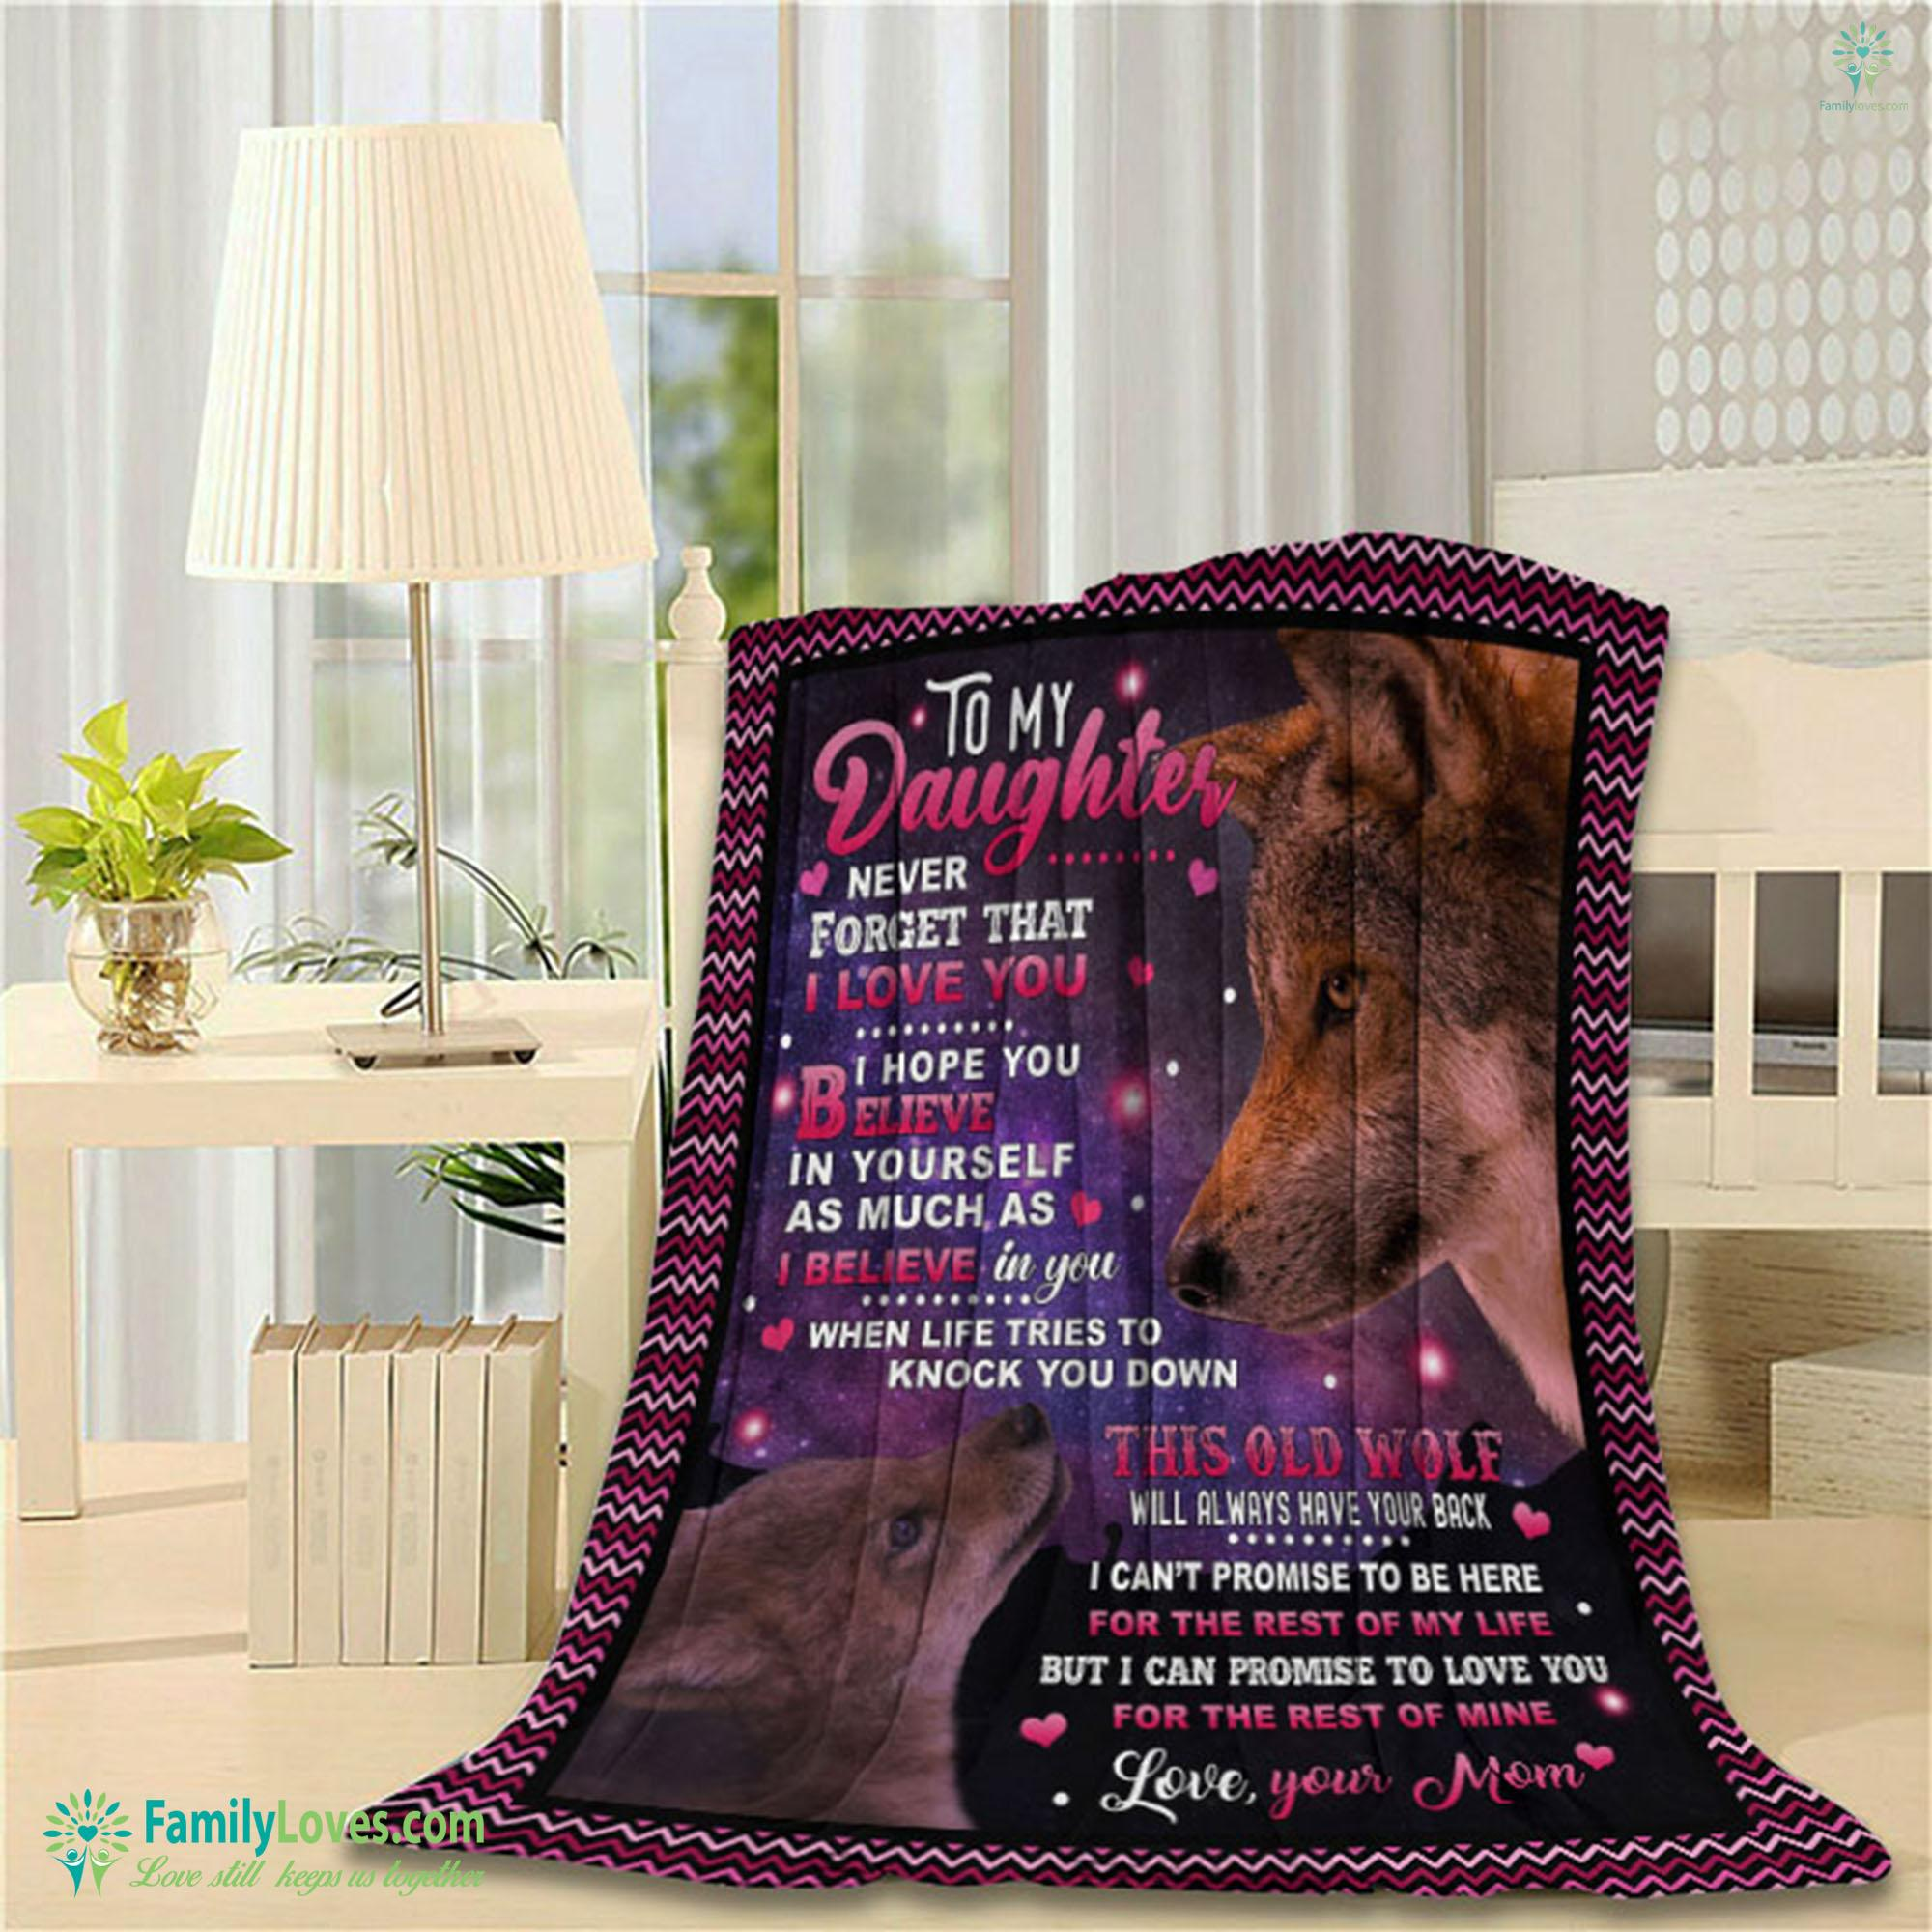 To My Daughter Wofl Blanket 7 Familyloves.com